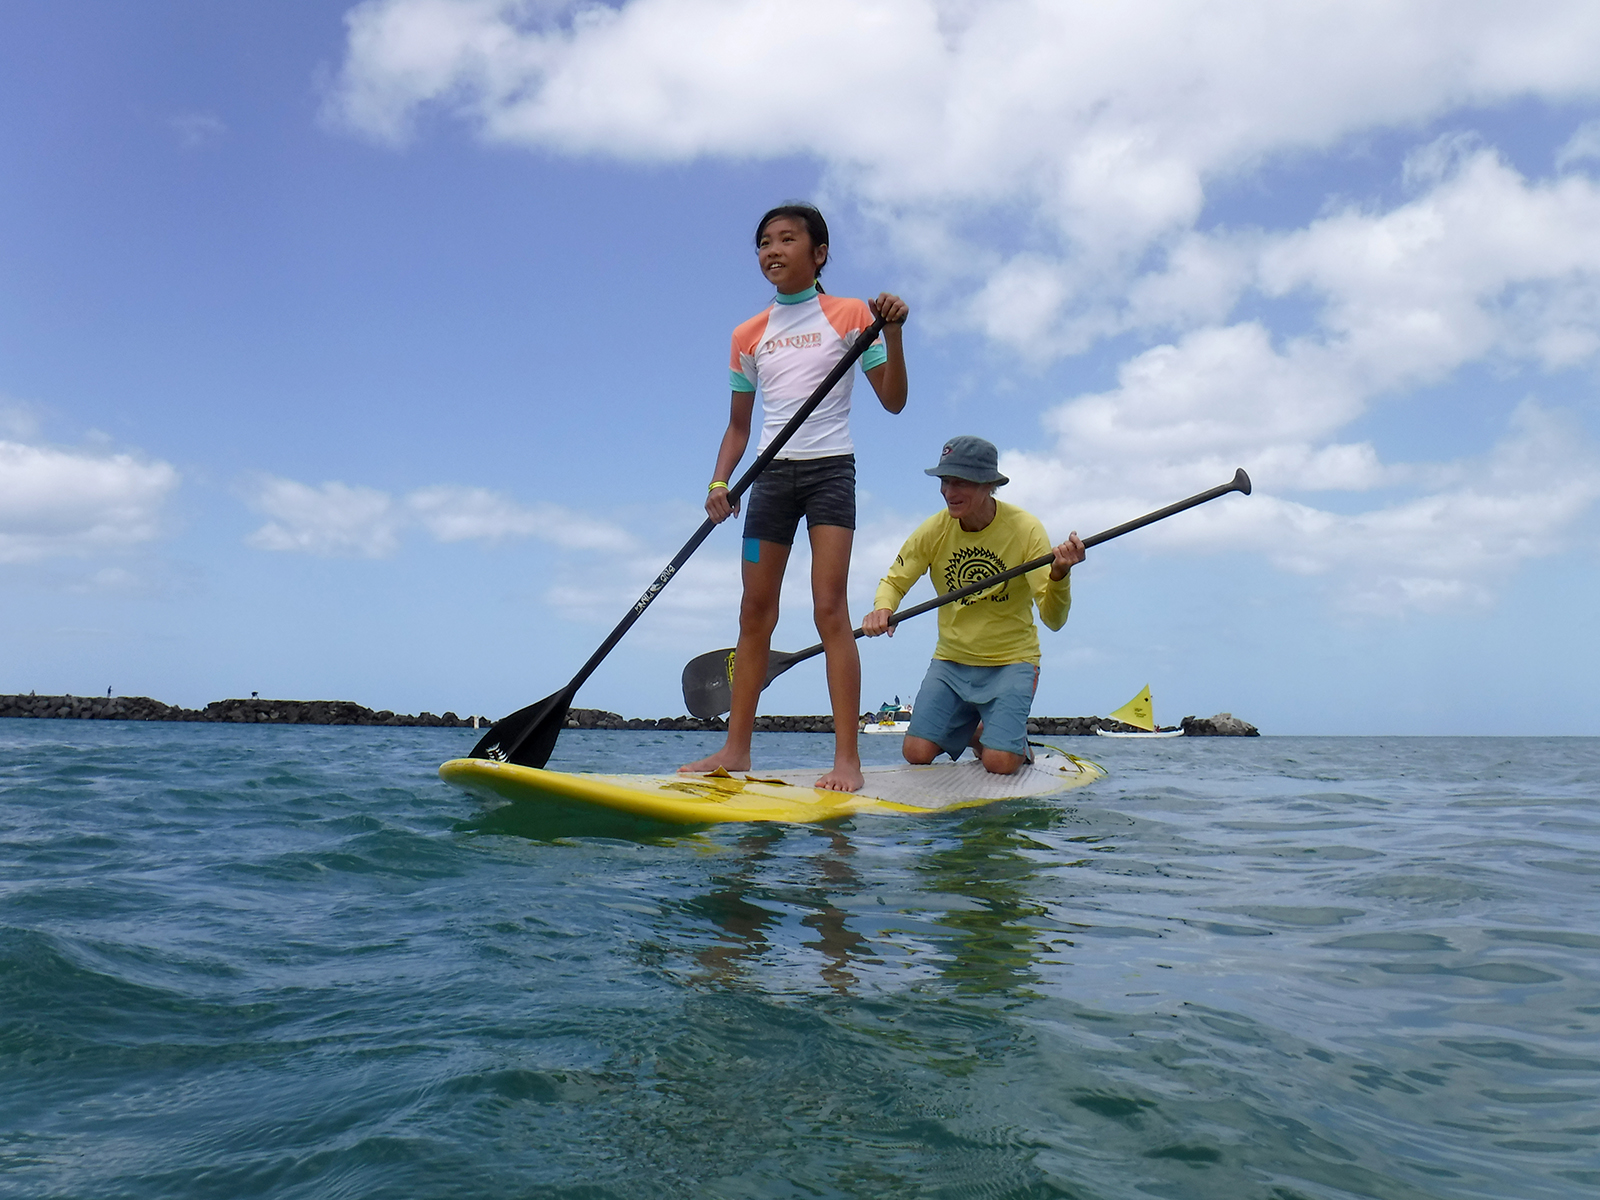 <p>Joyce Wong of Honolulu, left, and volunteer Jack Sutherland enjoy a paddle board ride. Kids are treated to group and one-on-one interactions with ocean professionals such as lifeguards, firefighters, marine scientists, Hawaiian cultural practitioners and ocean rescue instructors.</p>